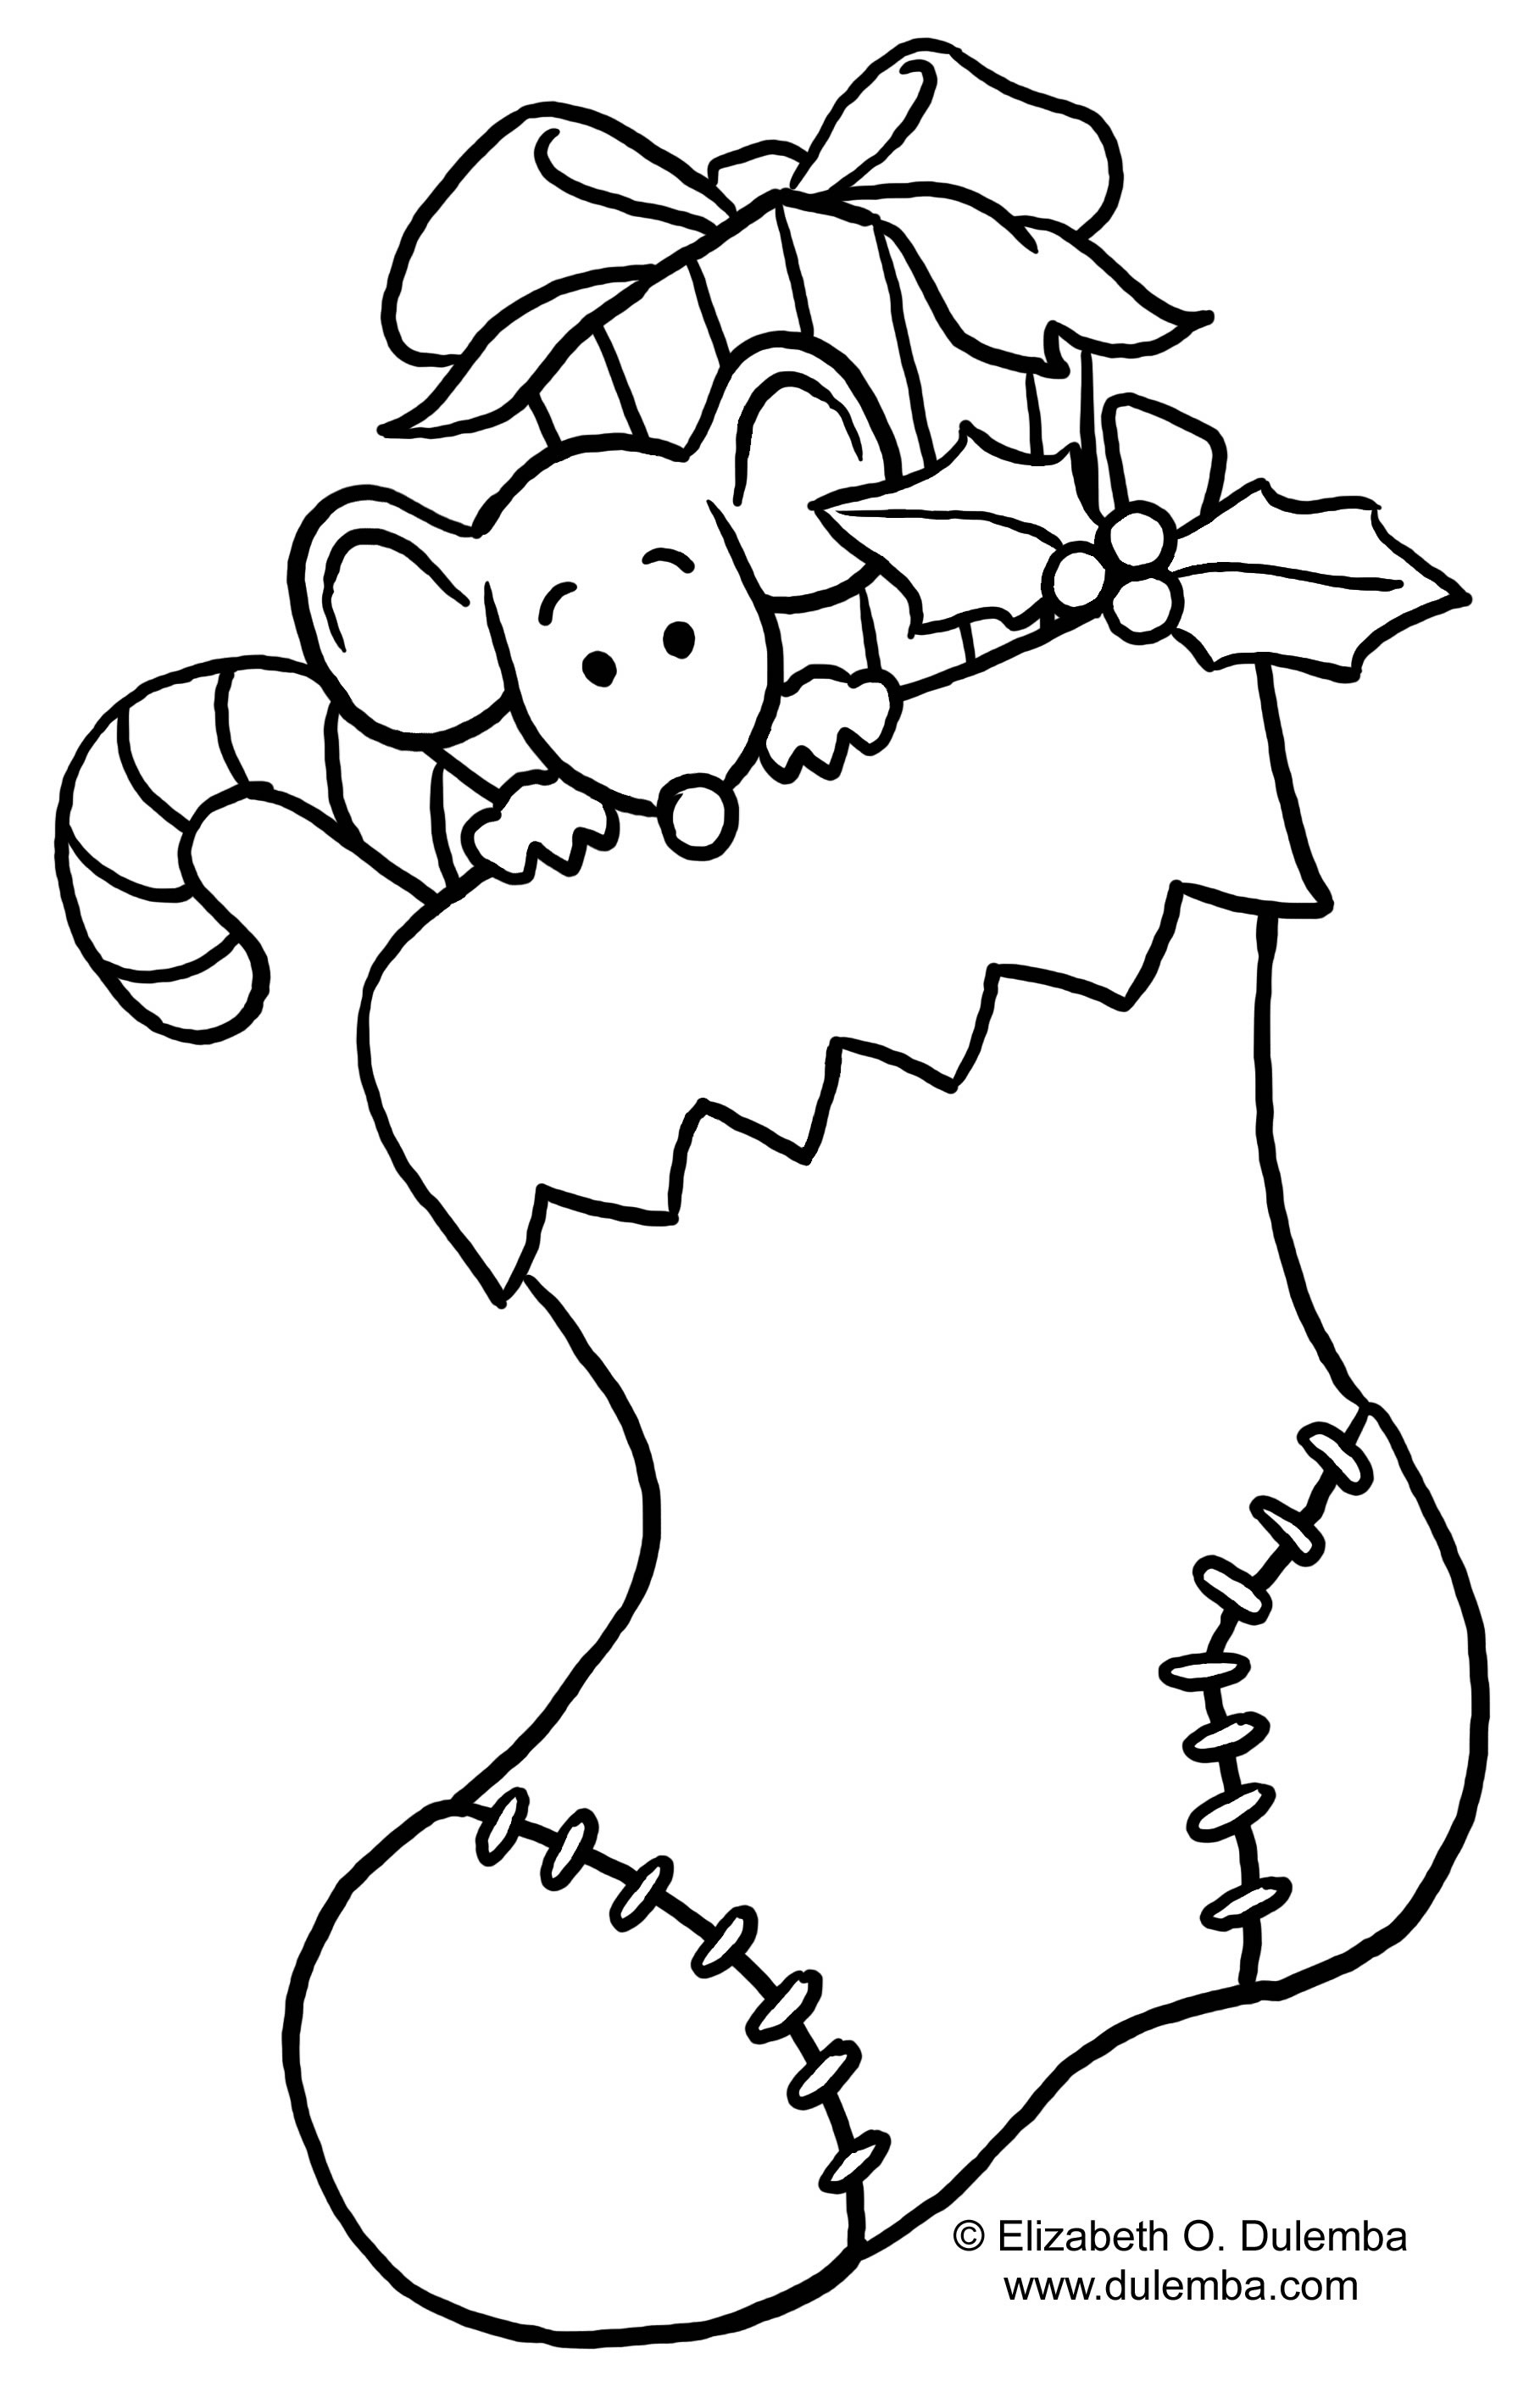 Coloring Pages ~ Coloring Pages Extraordinary Christmas Templates - Free Printable Christmas Cartoon Coloring Pages